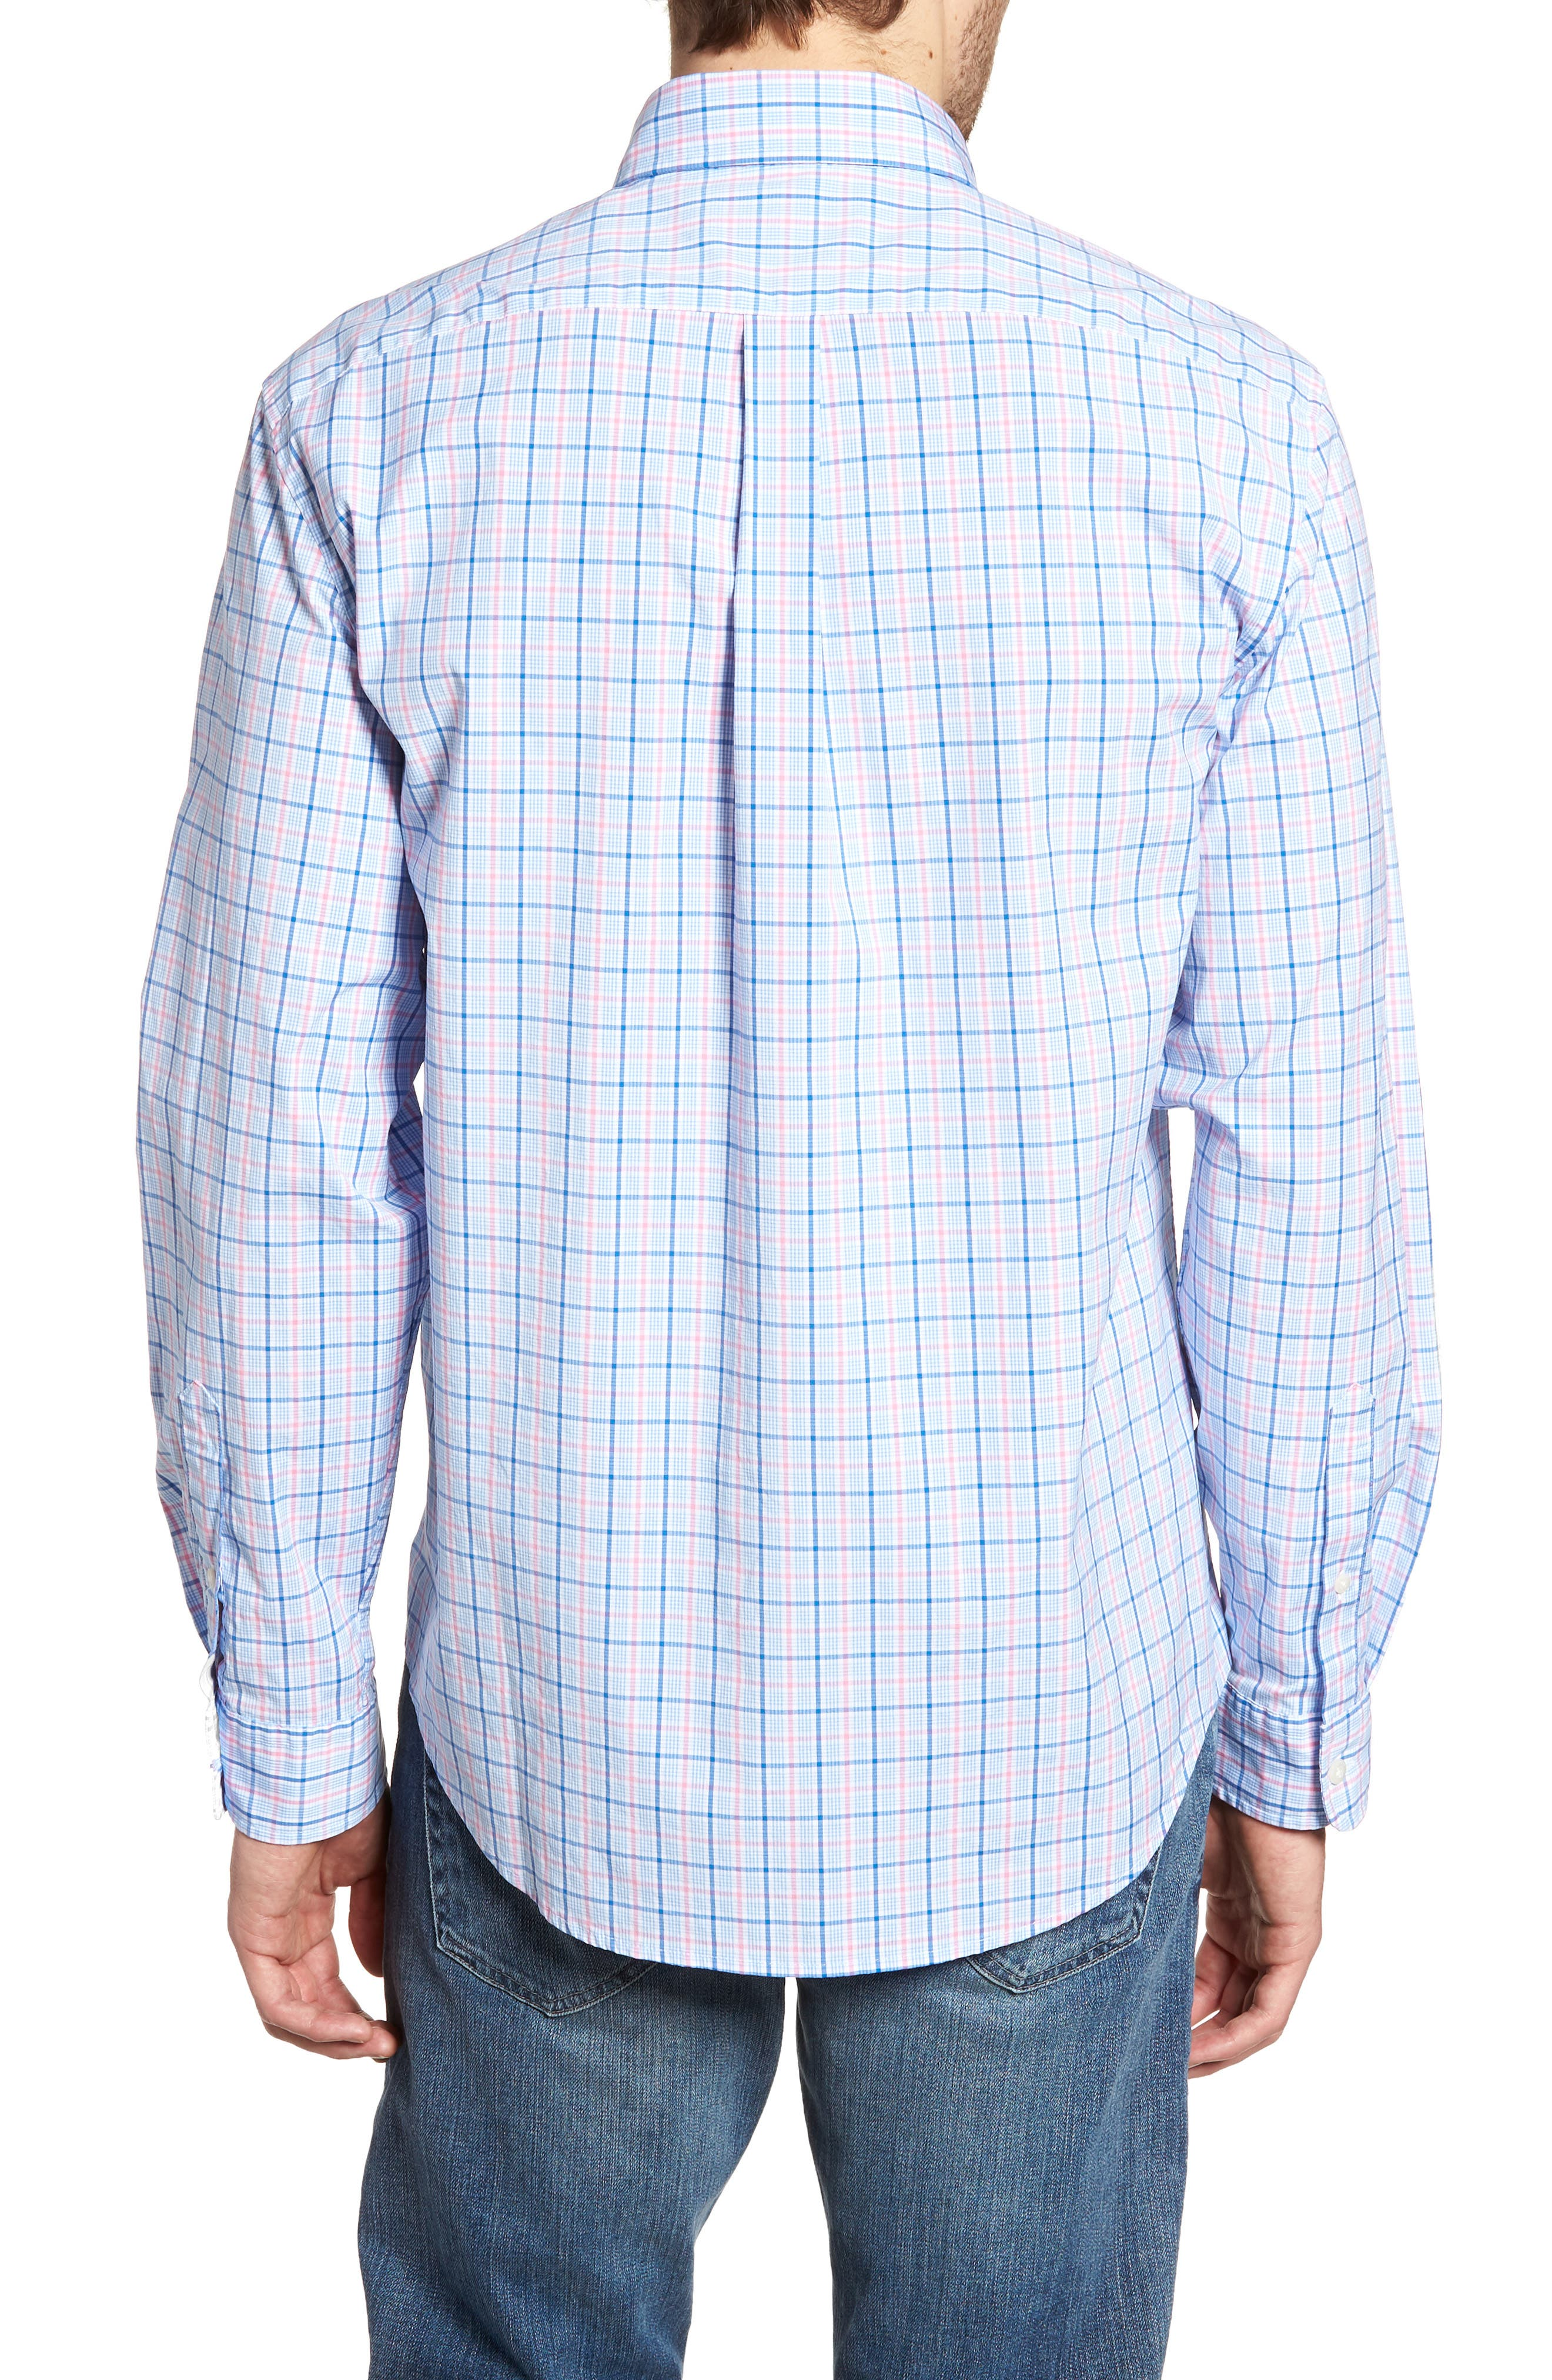 Sir Christie Classic Fit Check Sport Shirt,                             Alternate thumbnail 2, color,                             427